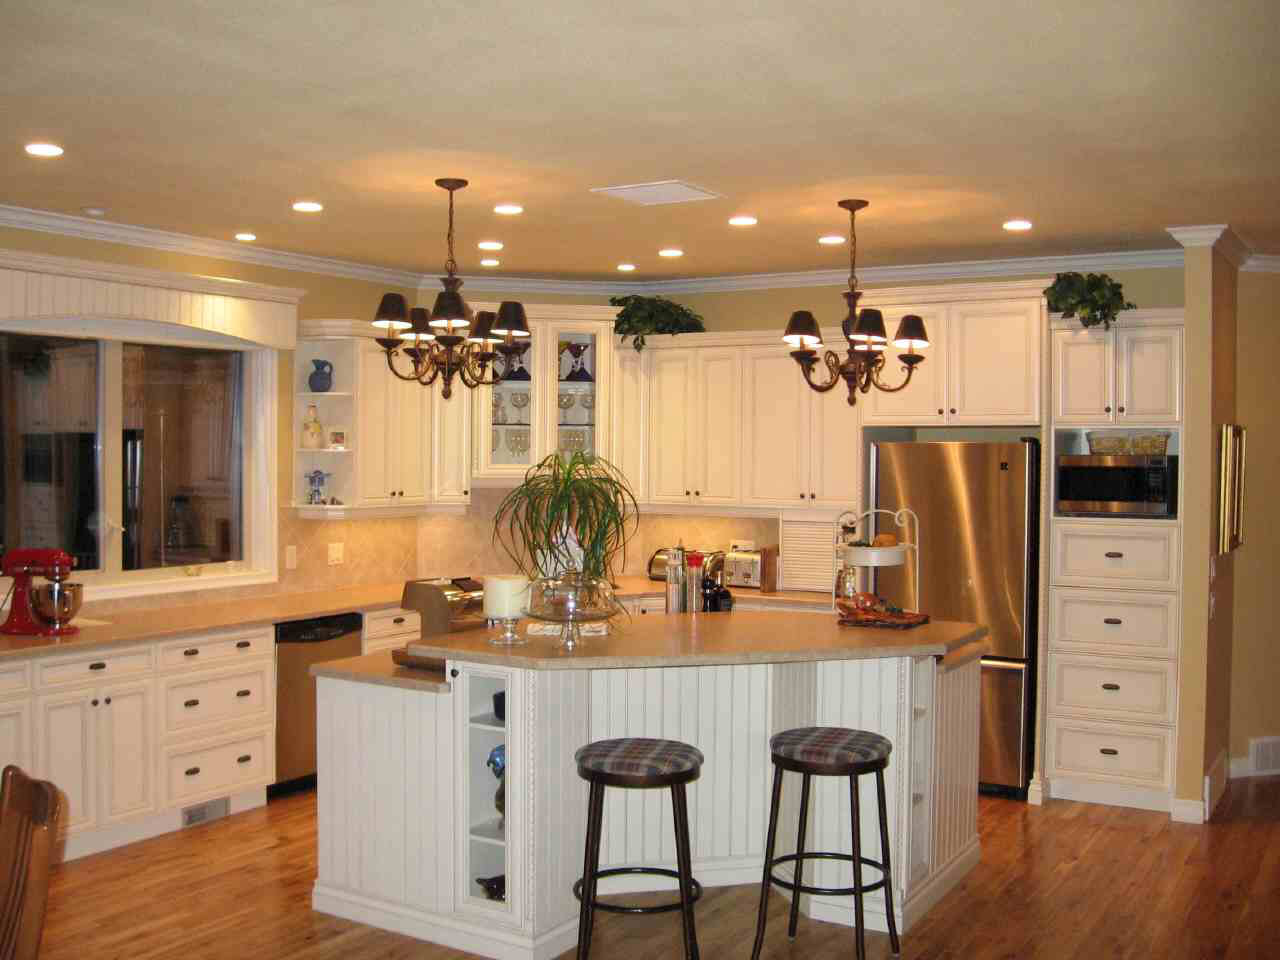 Interior kitchen design ideas home ideas decoration Home interior design ideas for kitchen